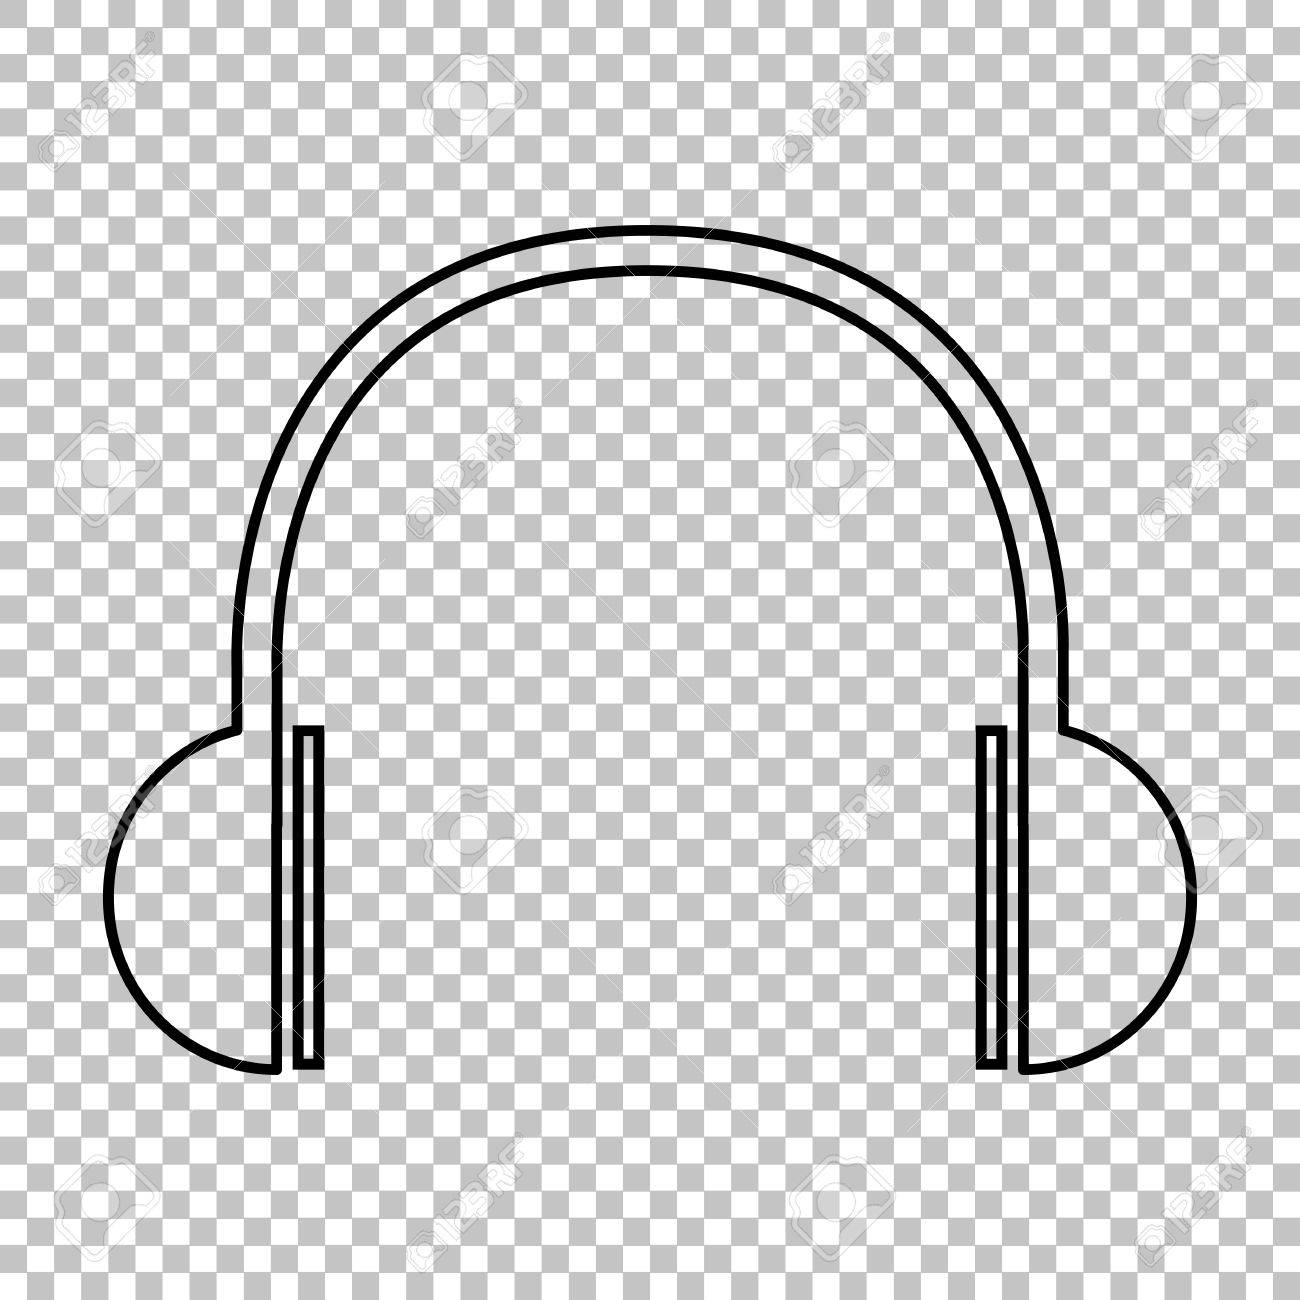 Headphones Clipart Transparent Background.